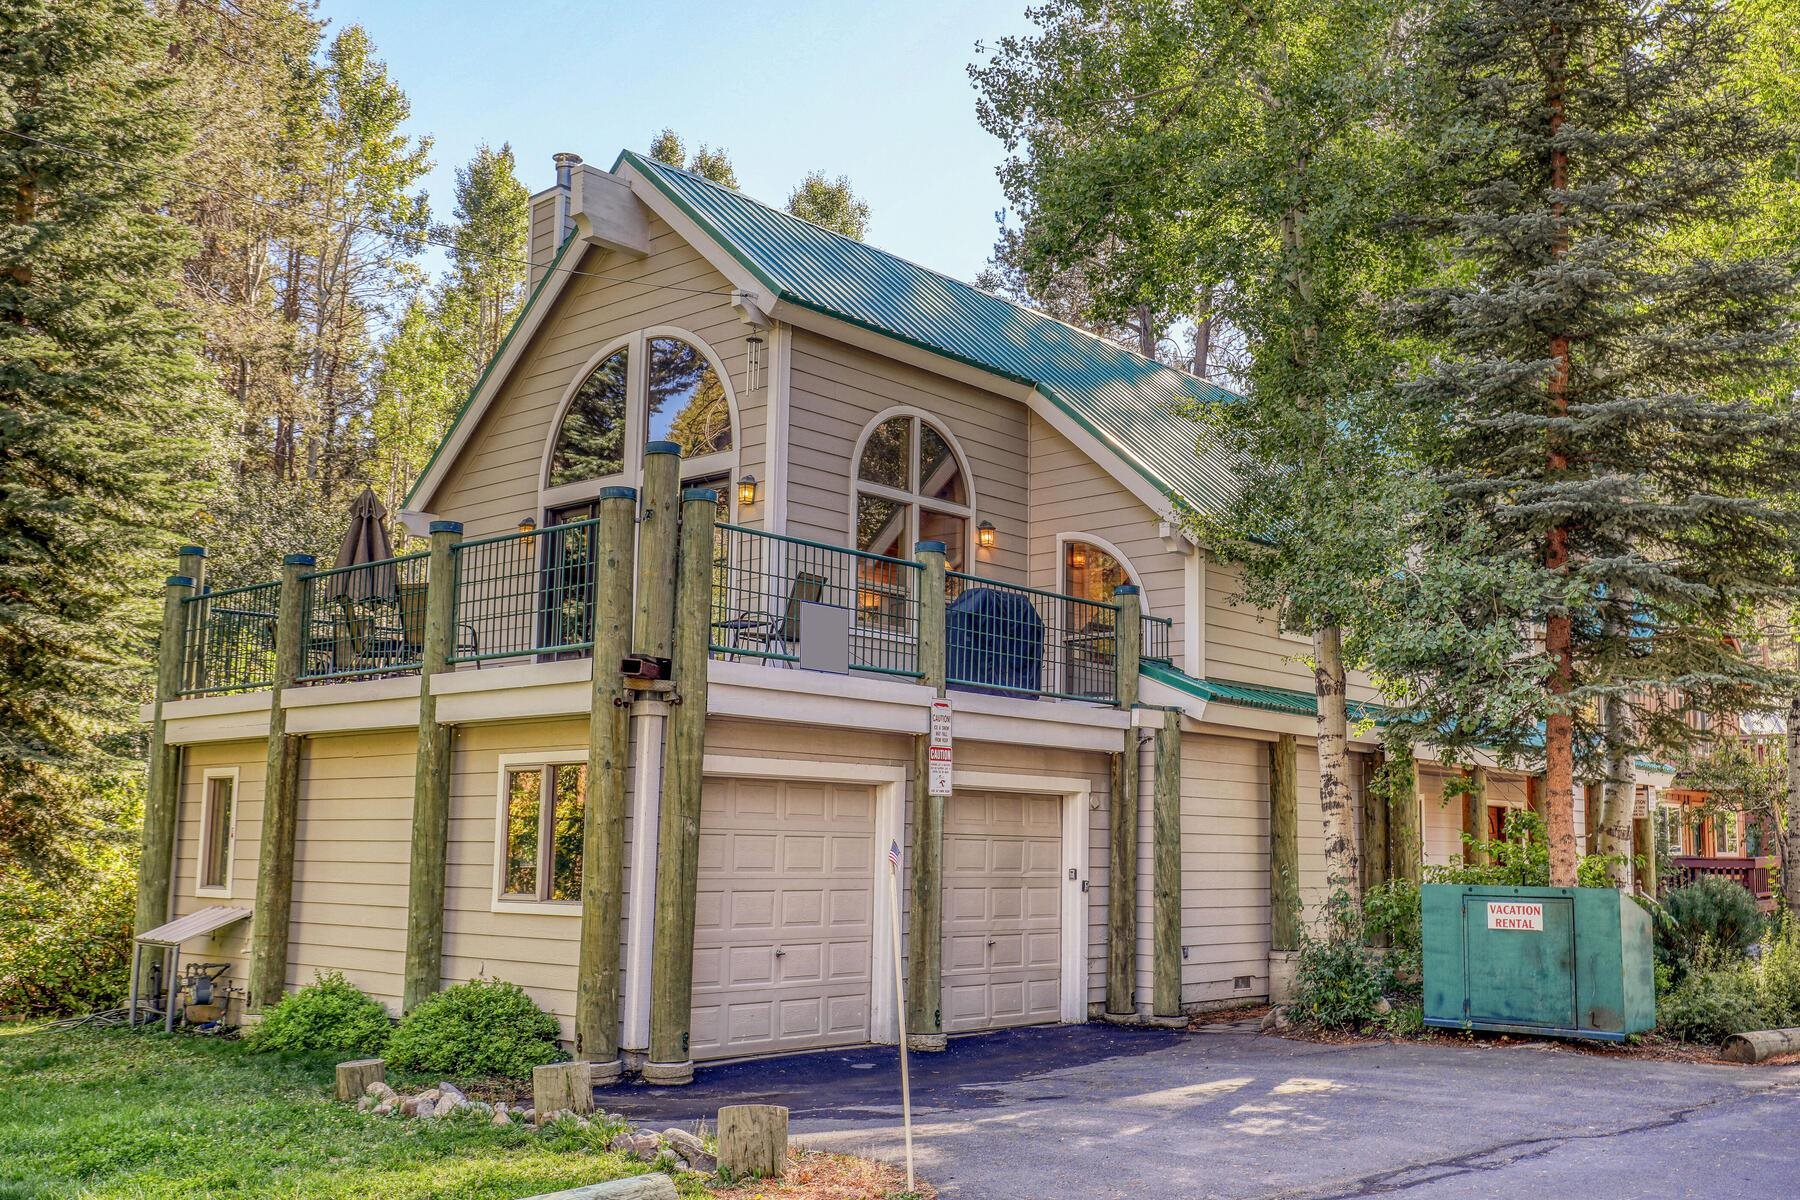 Image for 15855 South Shore Drive, Truckee, CA 96161